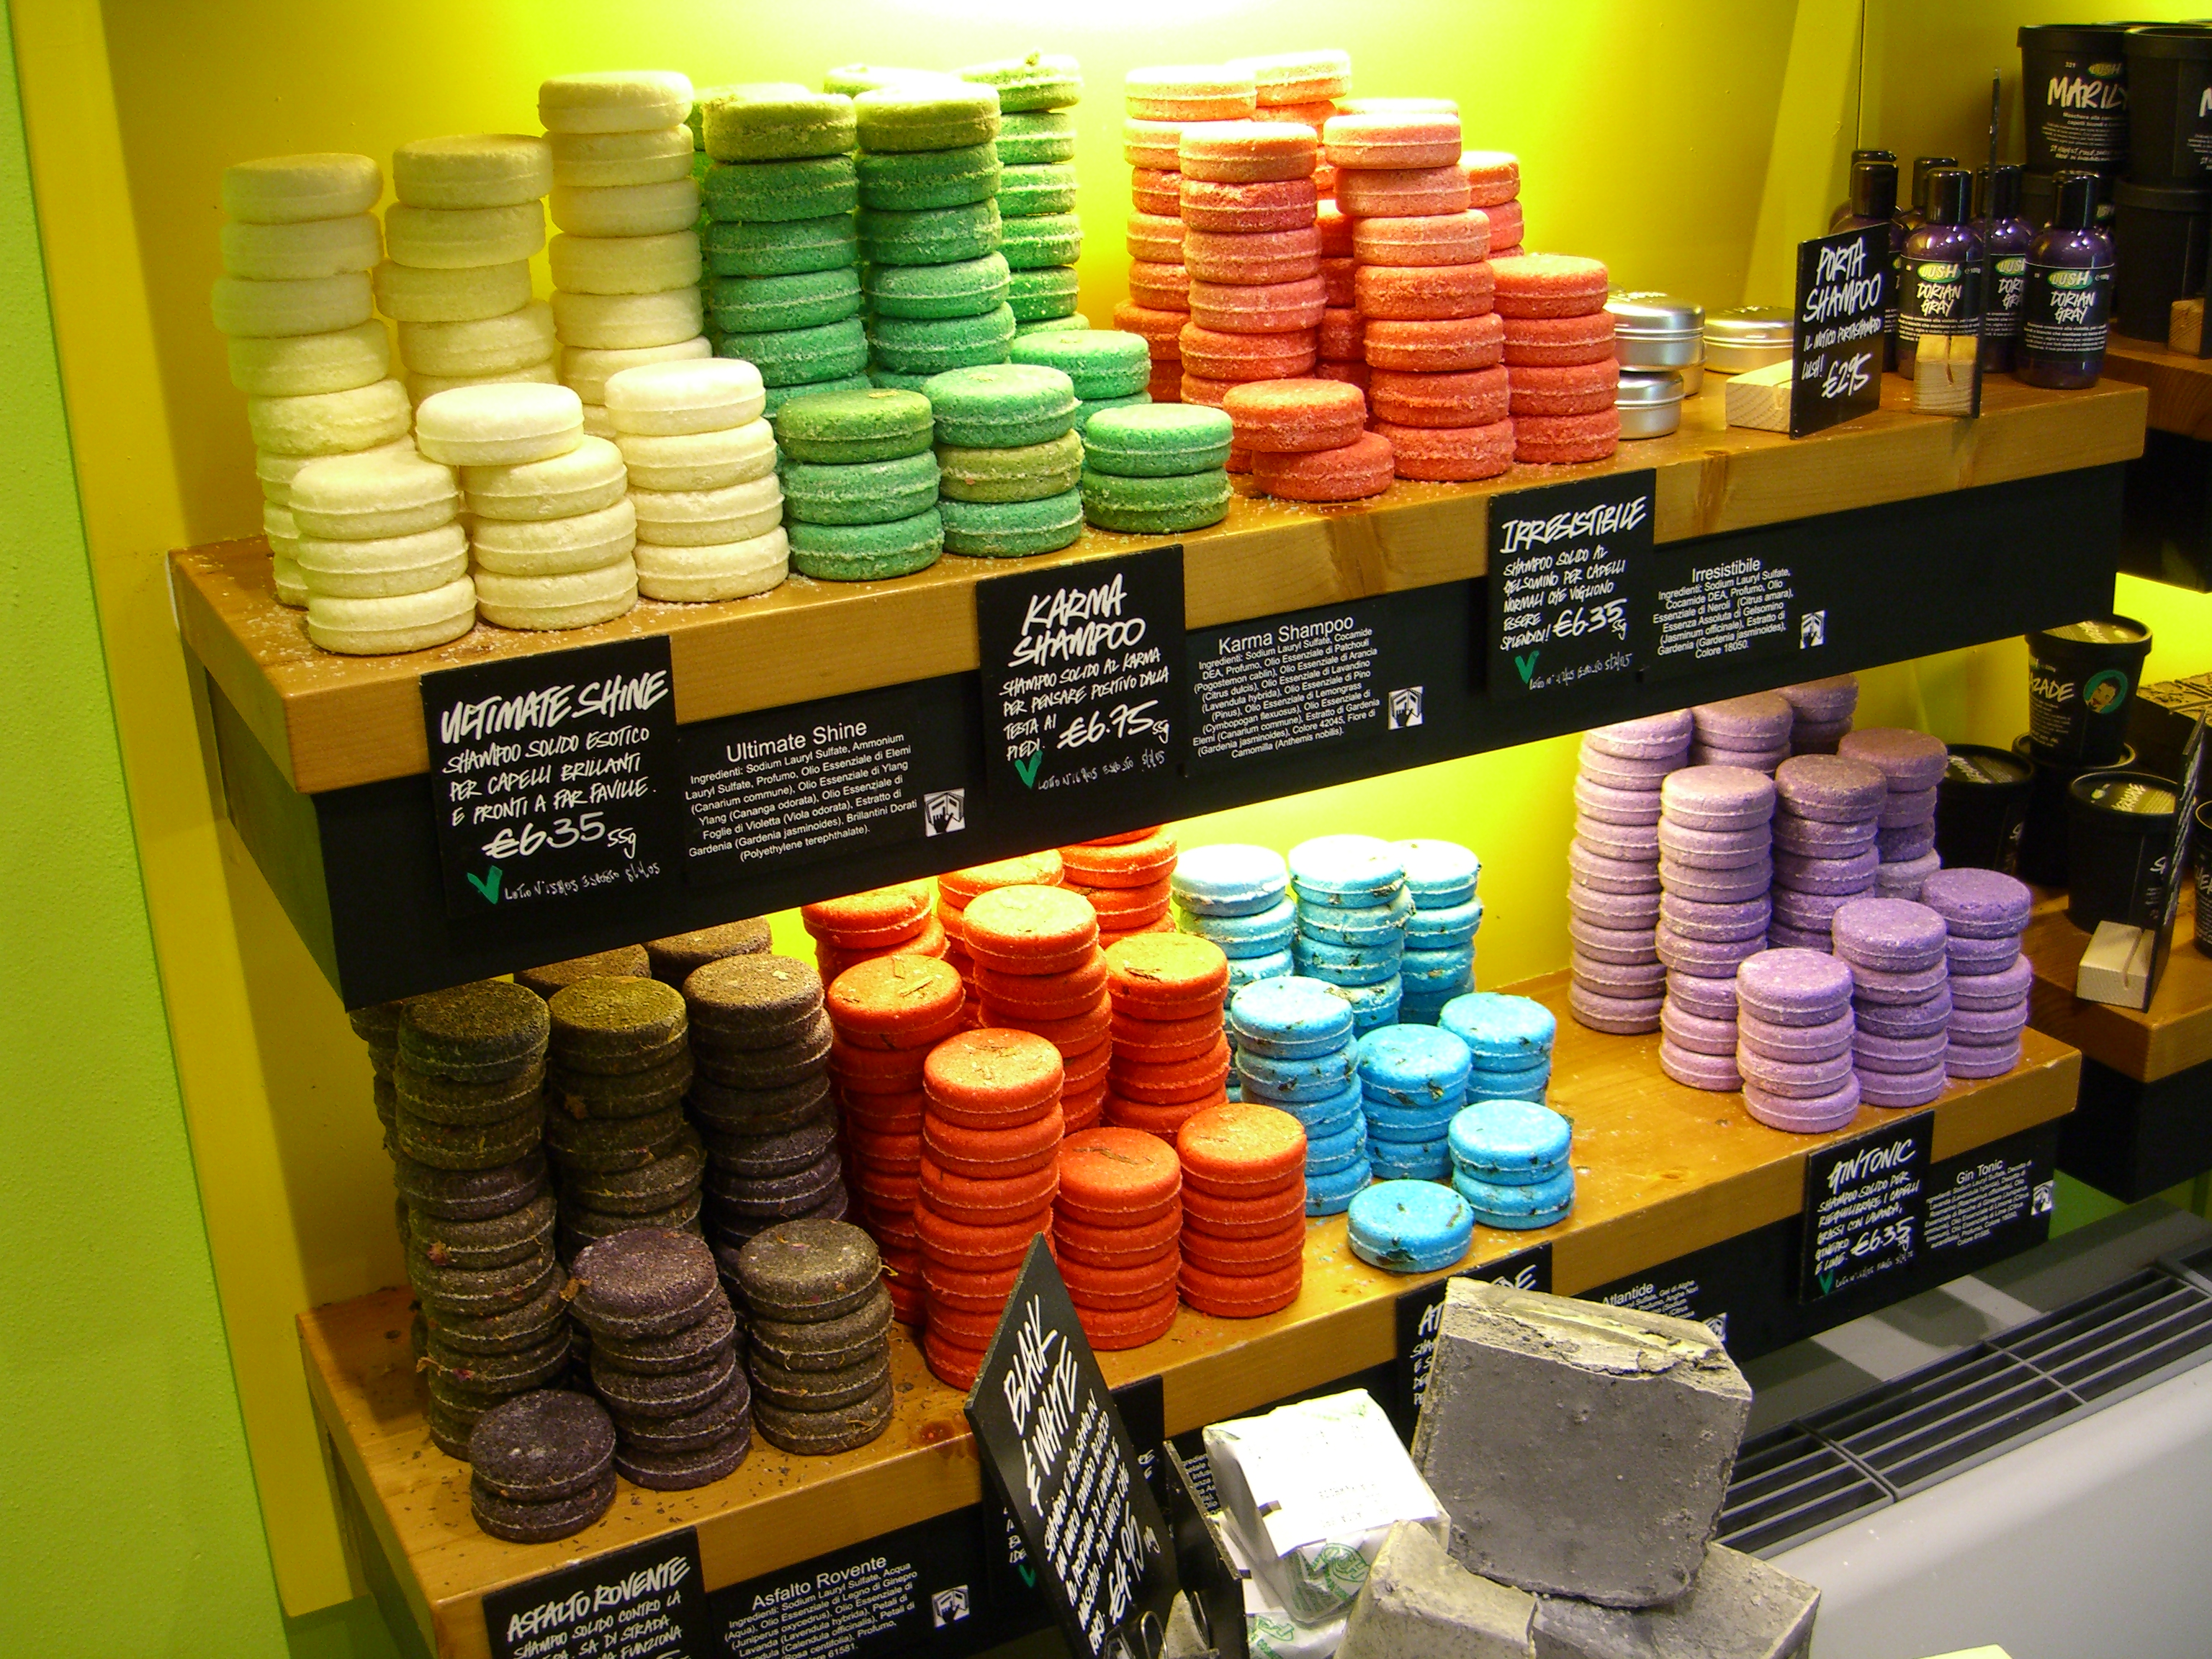 Lush (company) | Wiki & Review | Everipedia